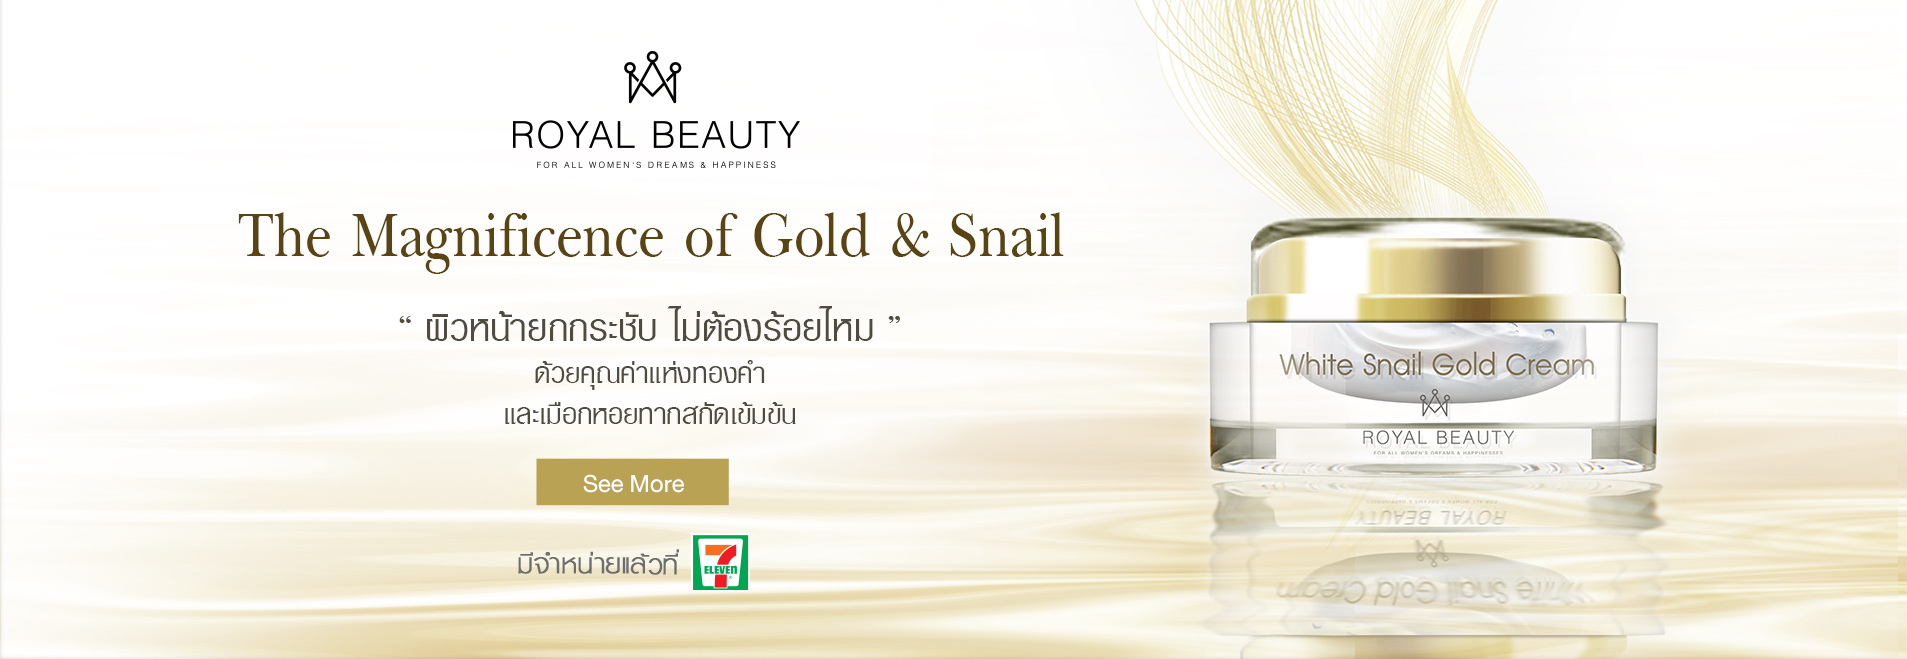 Royal Beauty White Snail Gold Cream